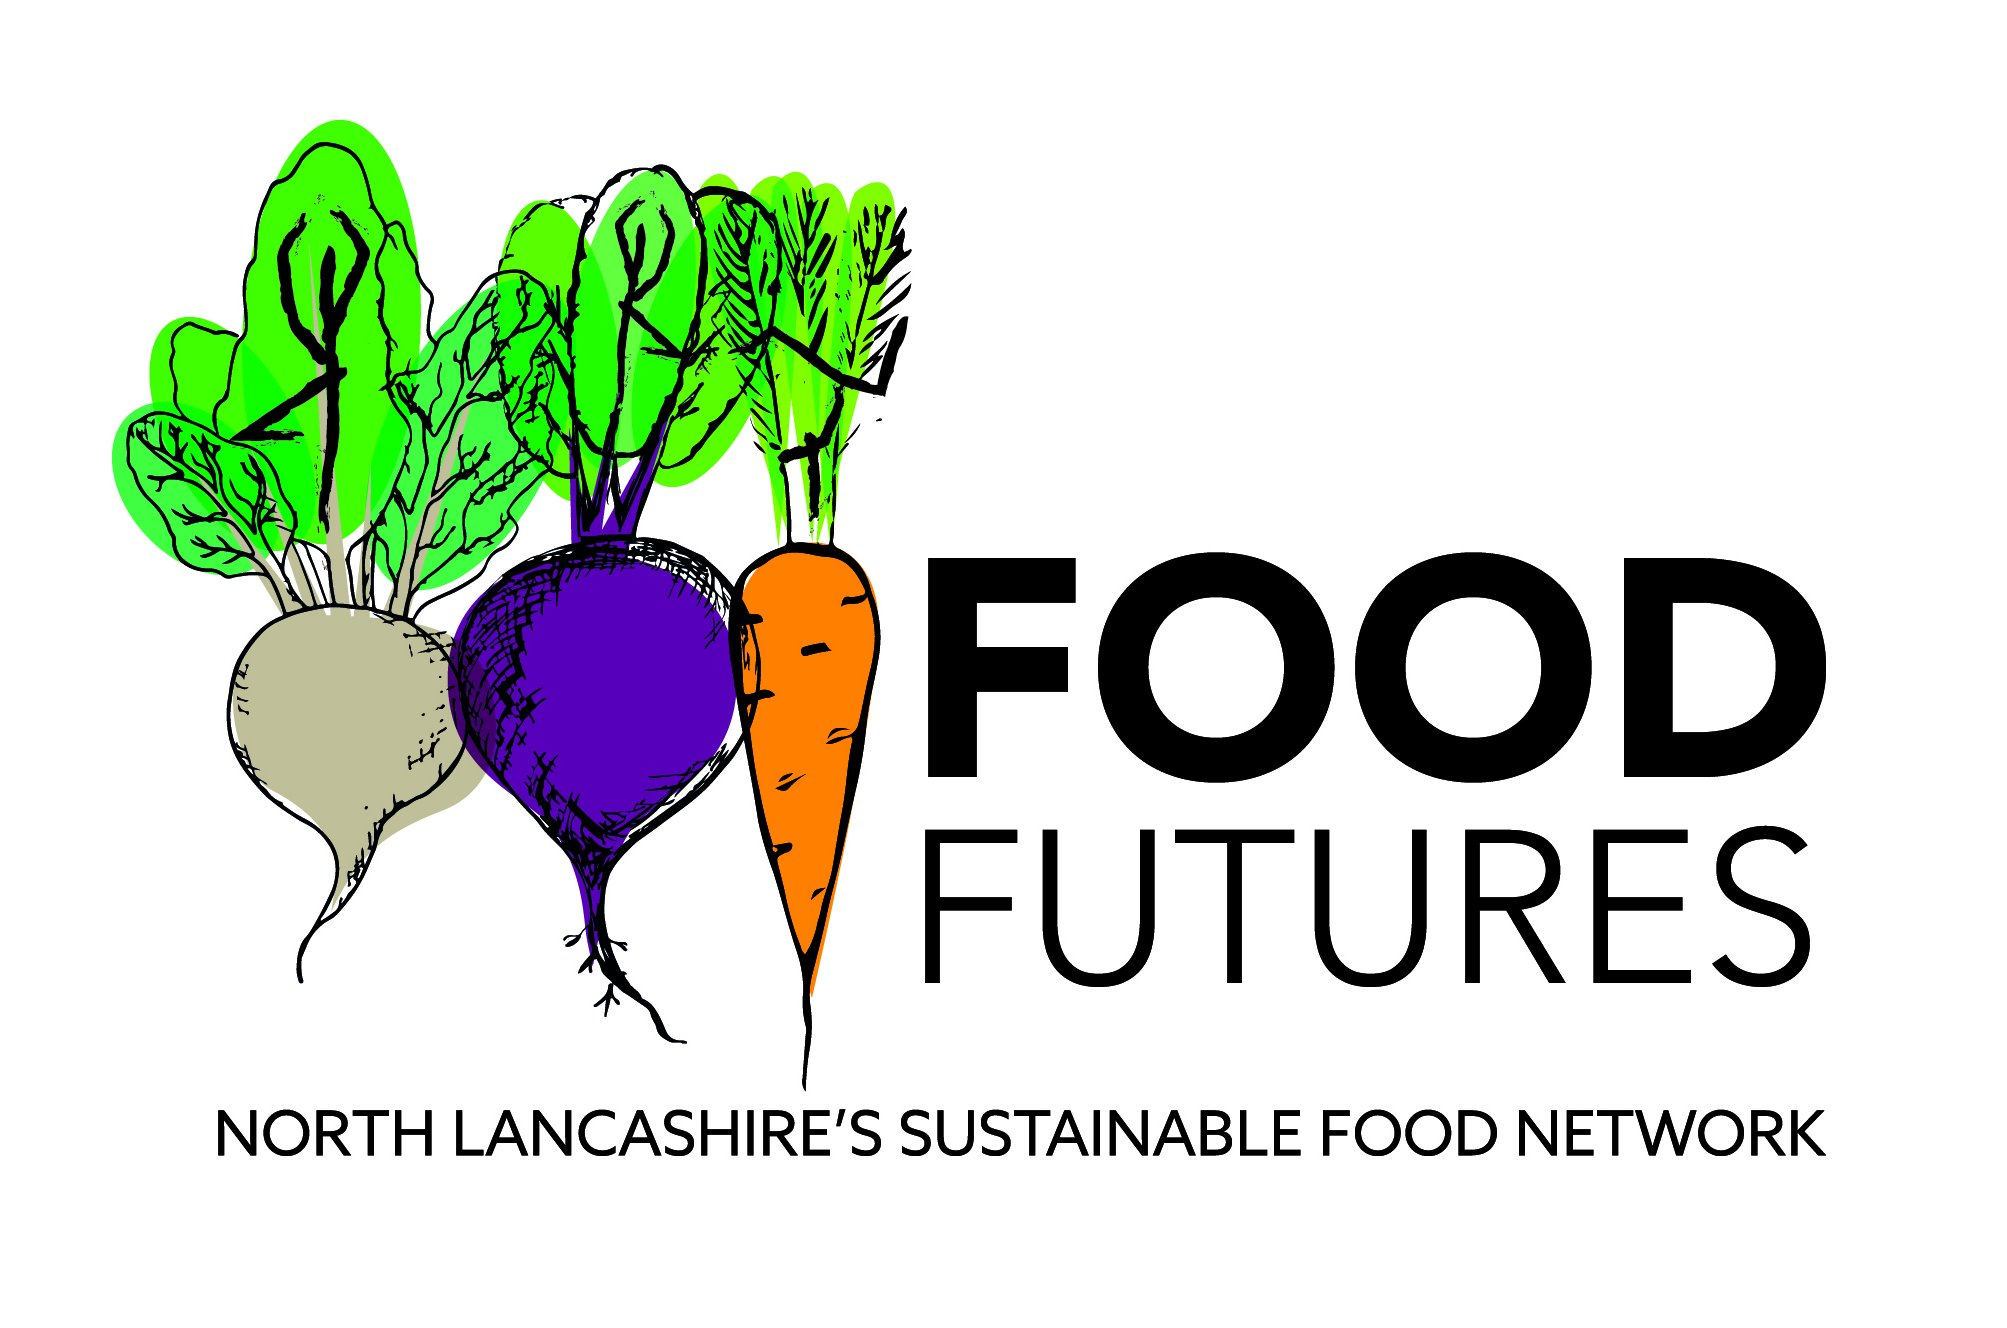 Food Futures and Lancaster University: Growing practitioner and academic partnerships